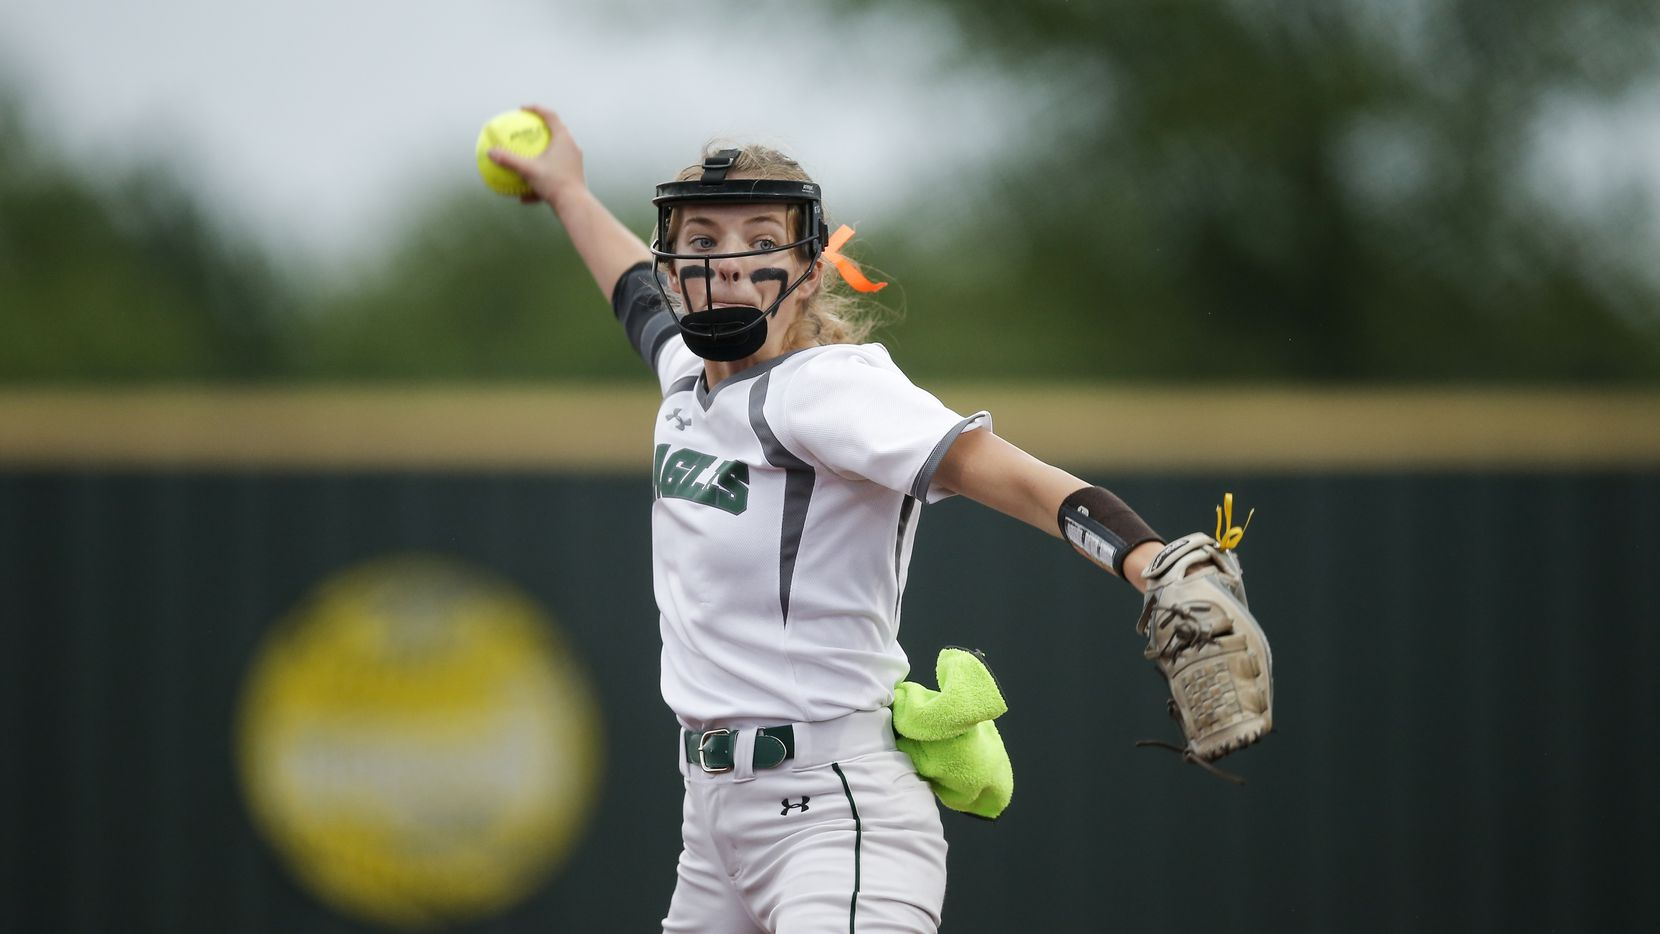 Prosper starting pitcher Elissa Griffin throws during game one of a best of three series of a Class 6A bi-district playoff softball game against Flower Mound Marcus at Prosper High School, Thursday, April 29, 2021.